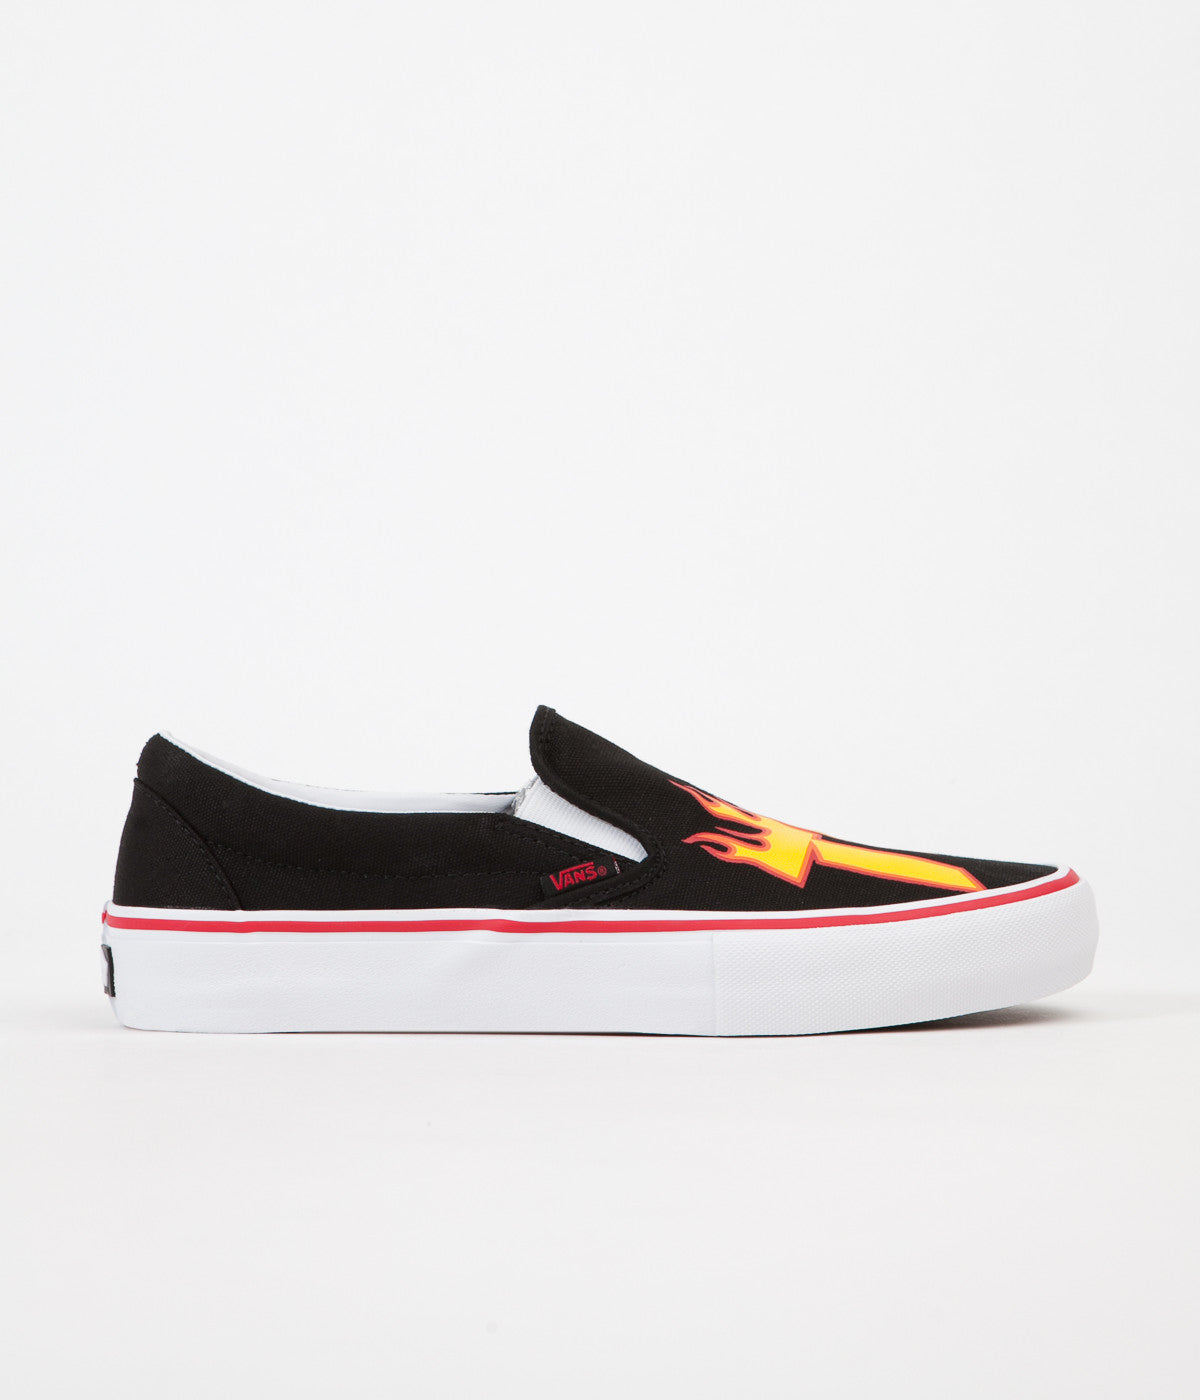 2a5ea6a79b4 Vans x Thrasher Slip On Pro Shoes - Black